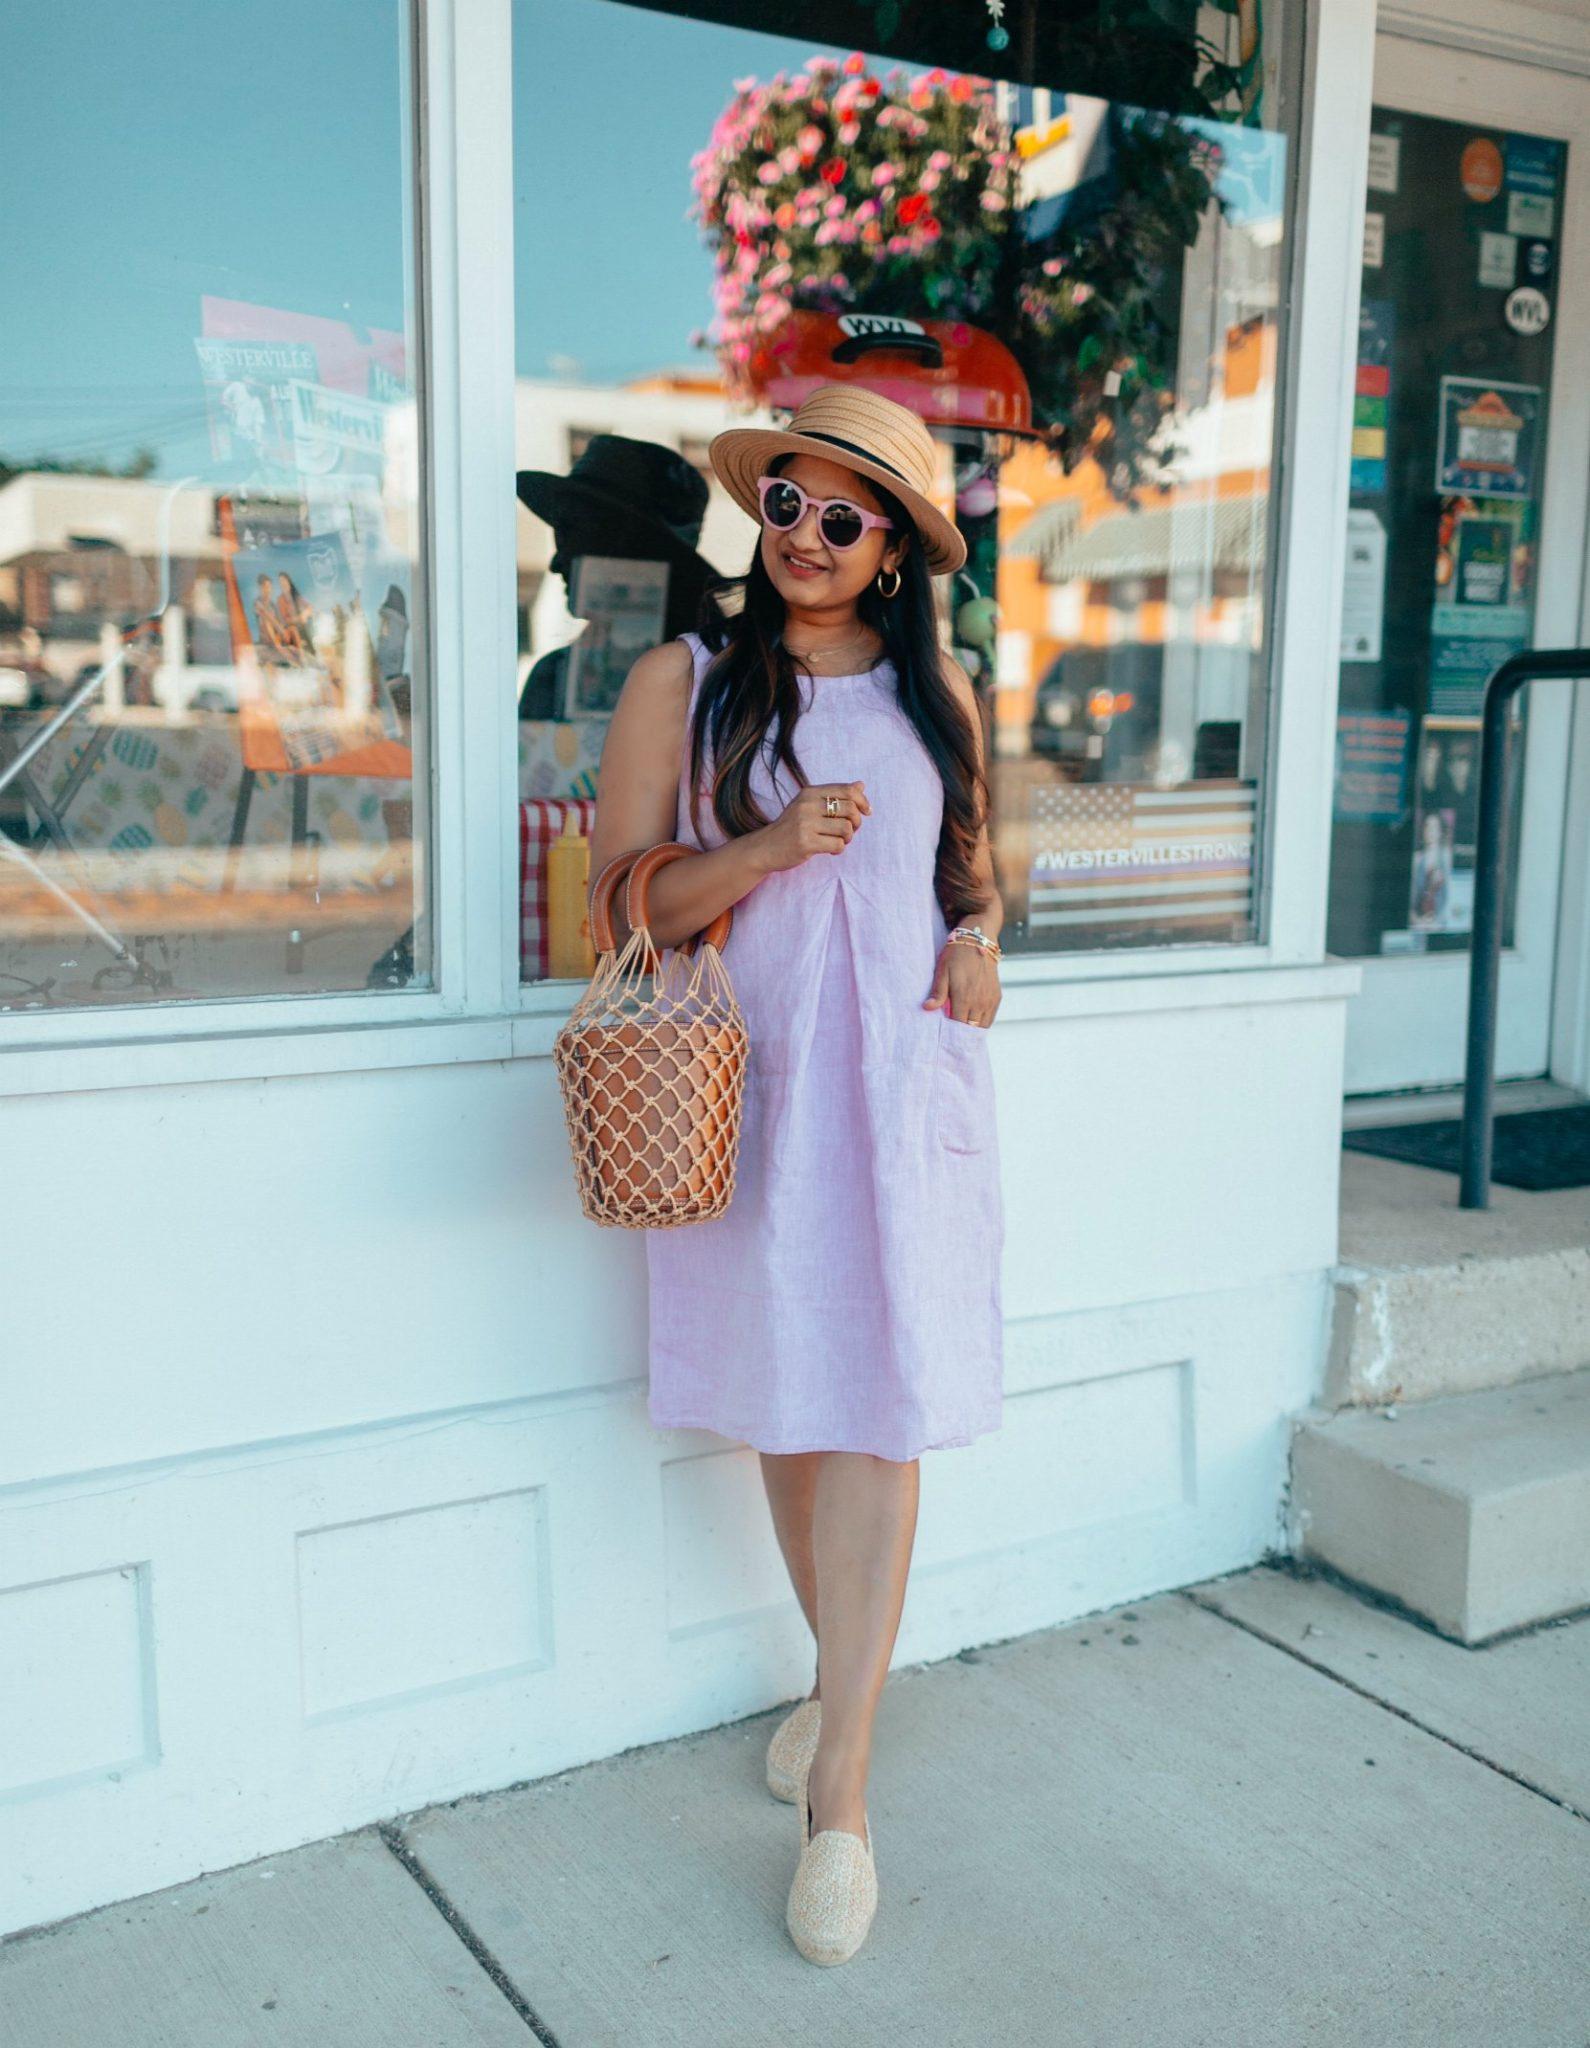 Top US modest fashion blog, Dreaming Loud, features their Favorite Trendy Summer Accessories: image of a woman wearing J.jill Linen Two-Pocket Dress , Manebi Yucatan Raffia Espadrilles, STAUD Moreau Bag